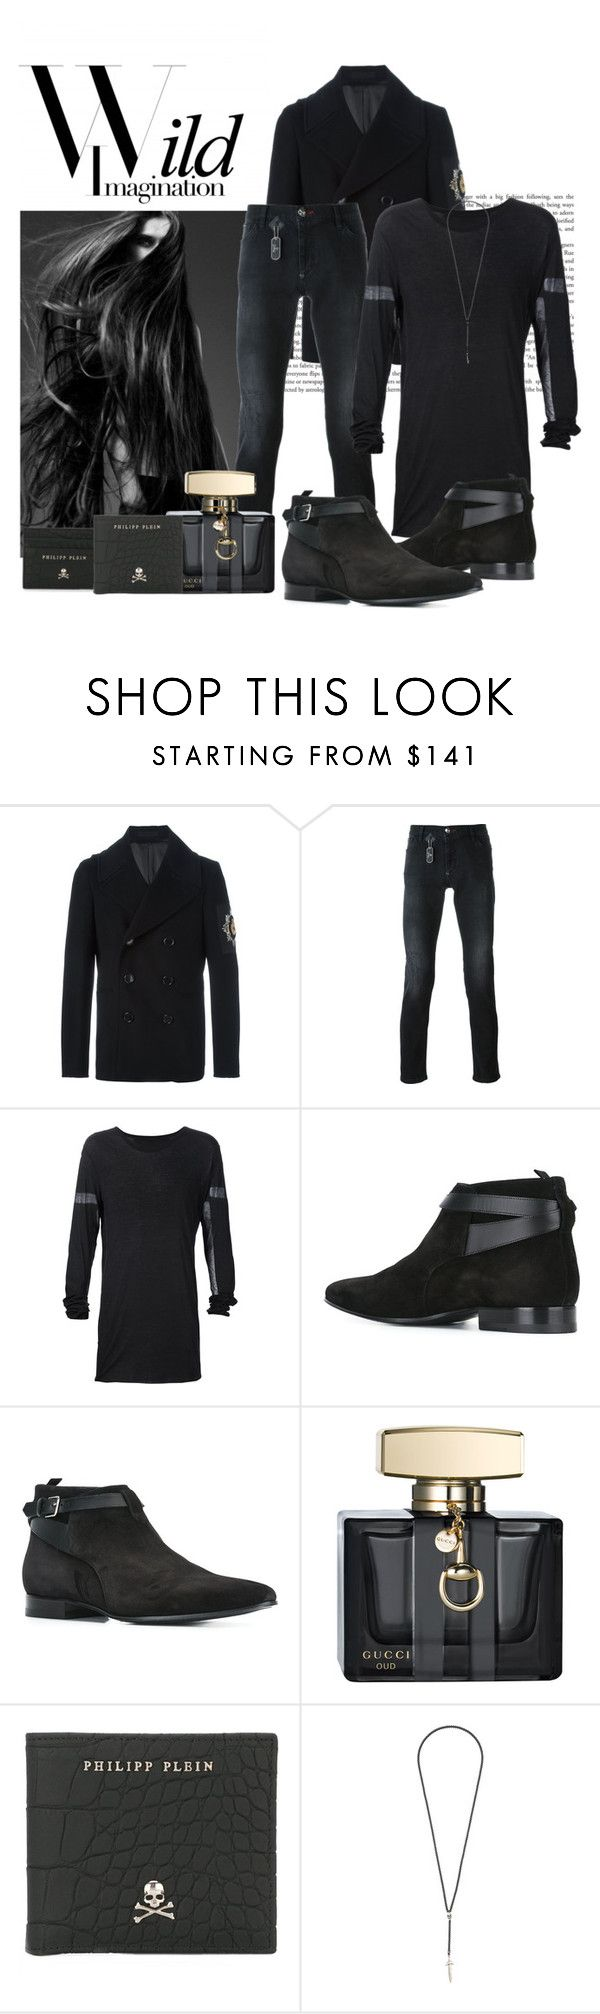 """""""Wild Imagination by Kole"""" by houseofstone-1 ❤ liked on Polyvore featuring Karl Lagerfeld, Alexander McQueen, Philipp Plein, Yves Saint Laurent, Gucci, Roman Paul, men's fashion and menswear"""